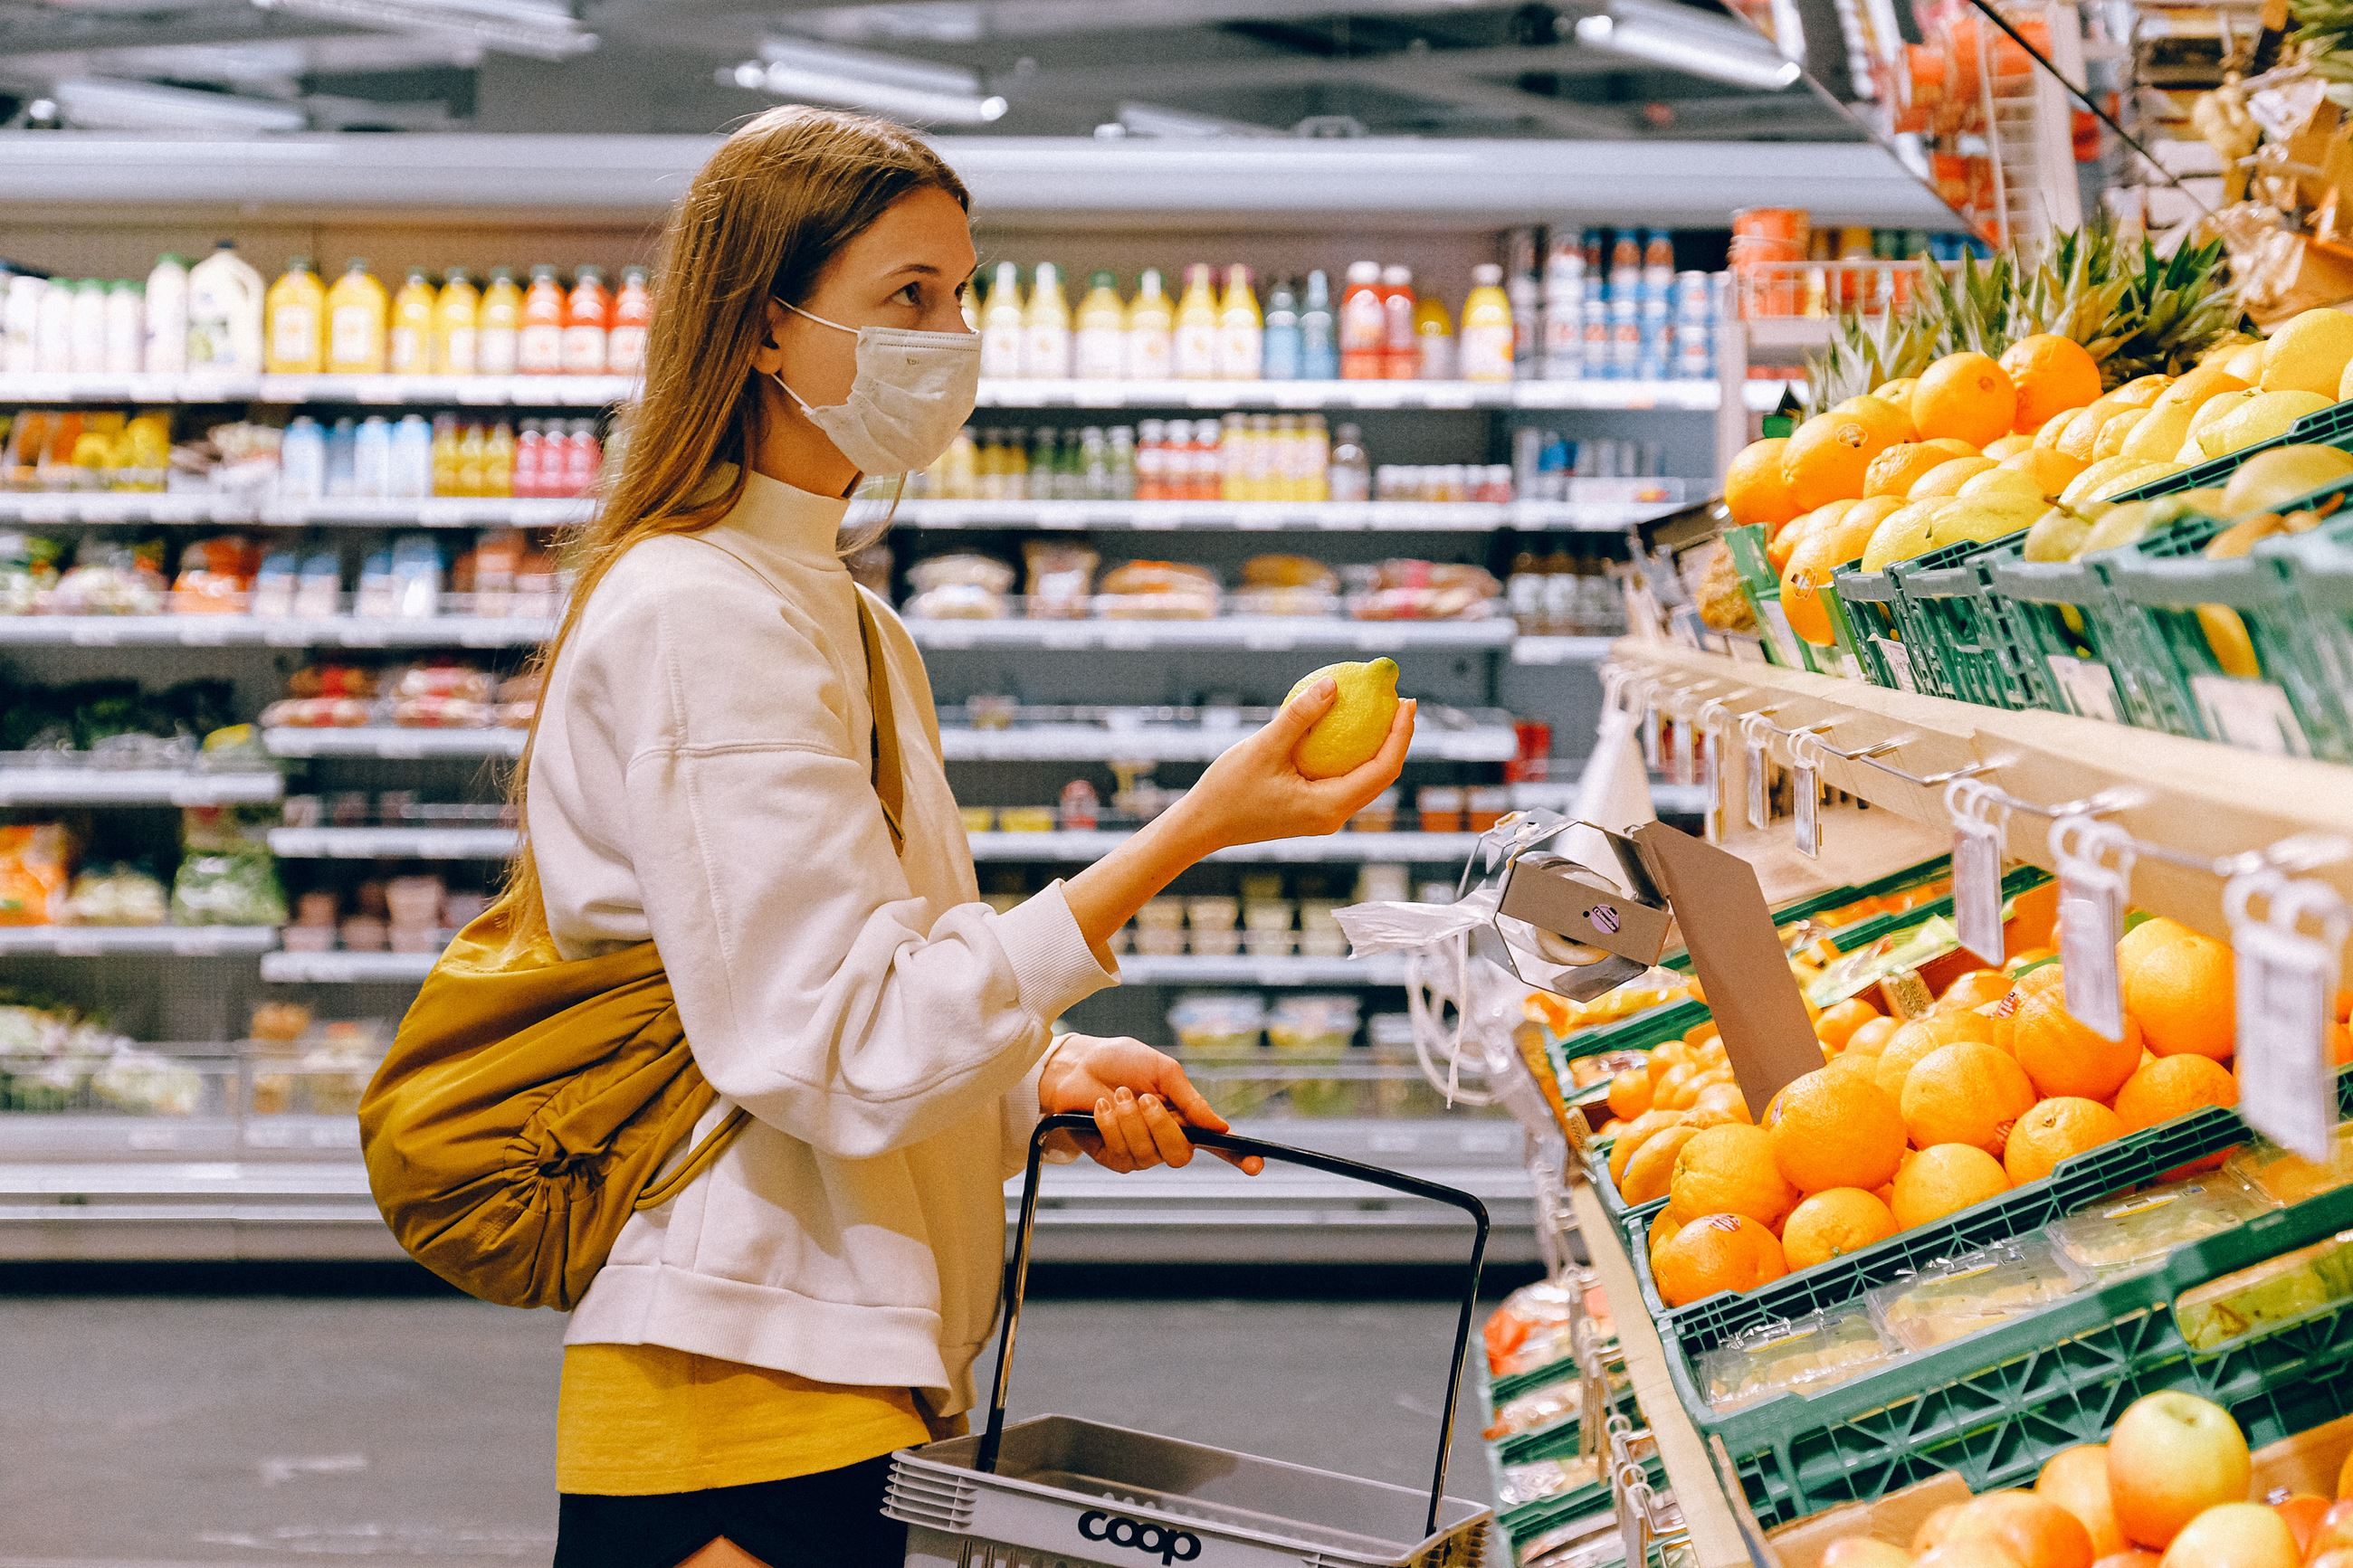 woman-in-yellow-tshirt-and-beige-jacket-holding-a-fruit-3962285 Opens in new window